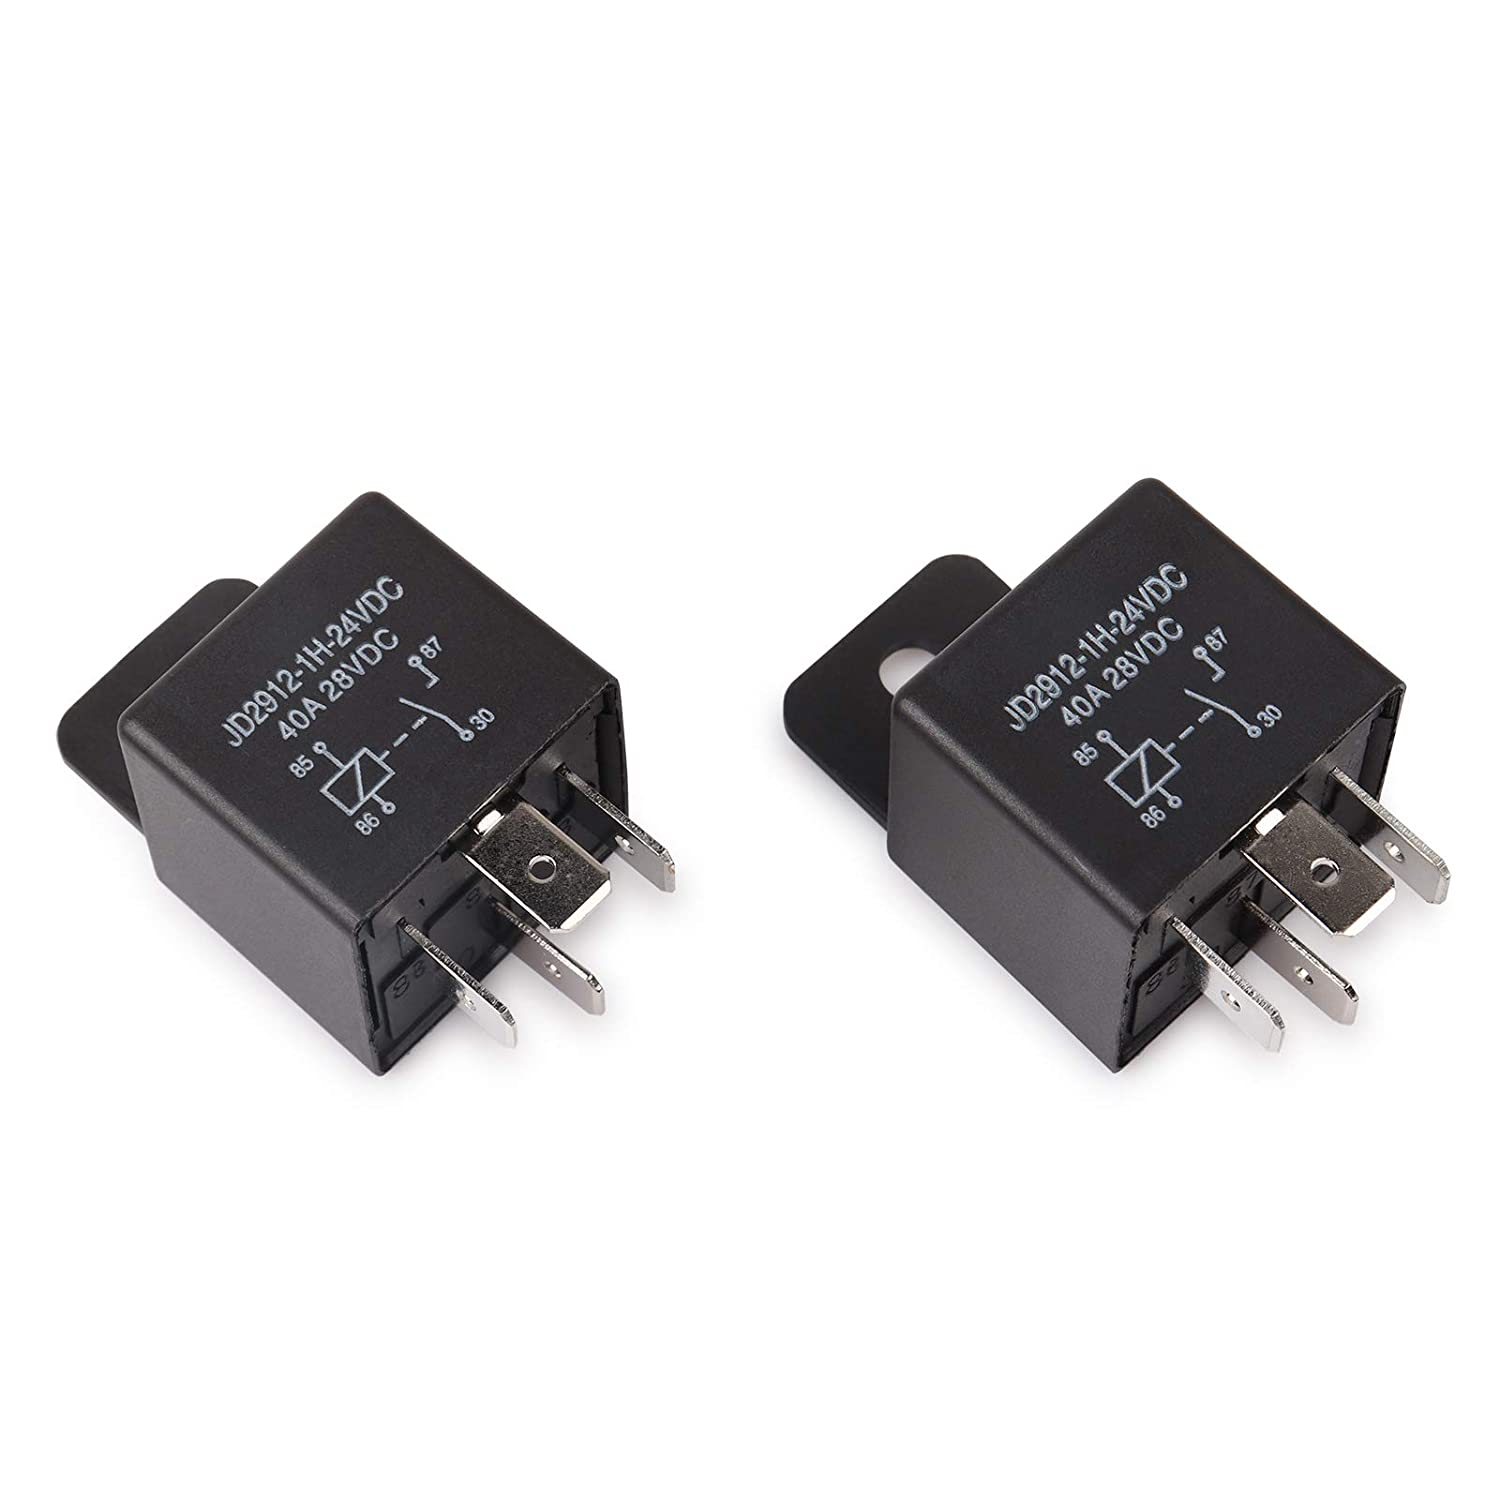 Auto Switches /& Starters 5 Pack Ehdis/® Car Relay 4 Pin 12v 40amp Spst Model No. JD2912-1H-12VDC 40A 14VDC